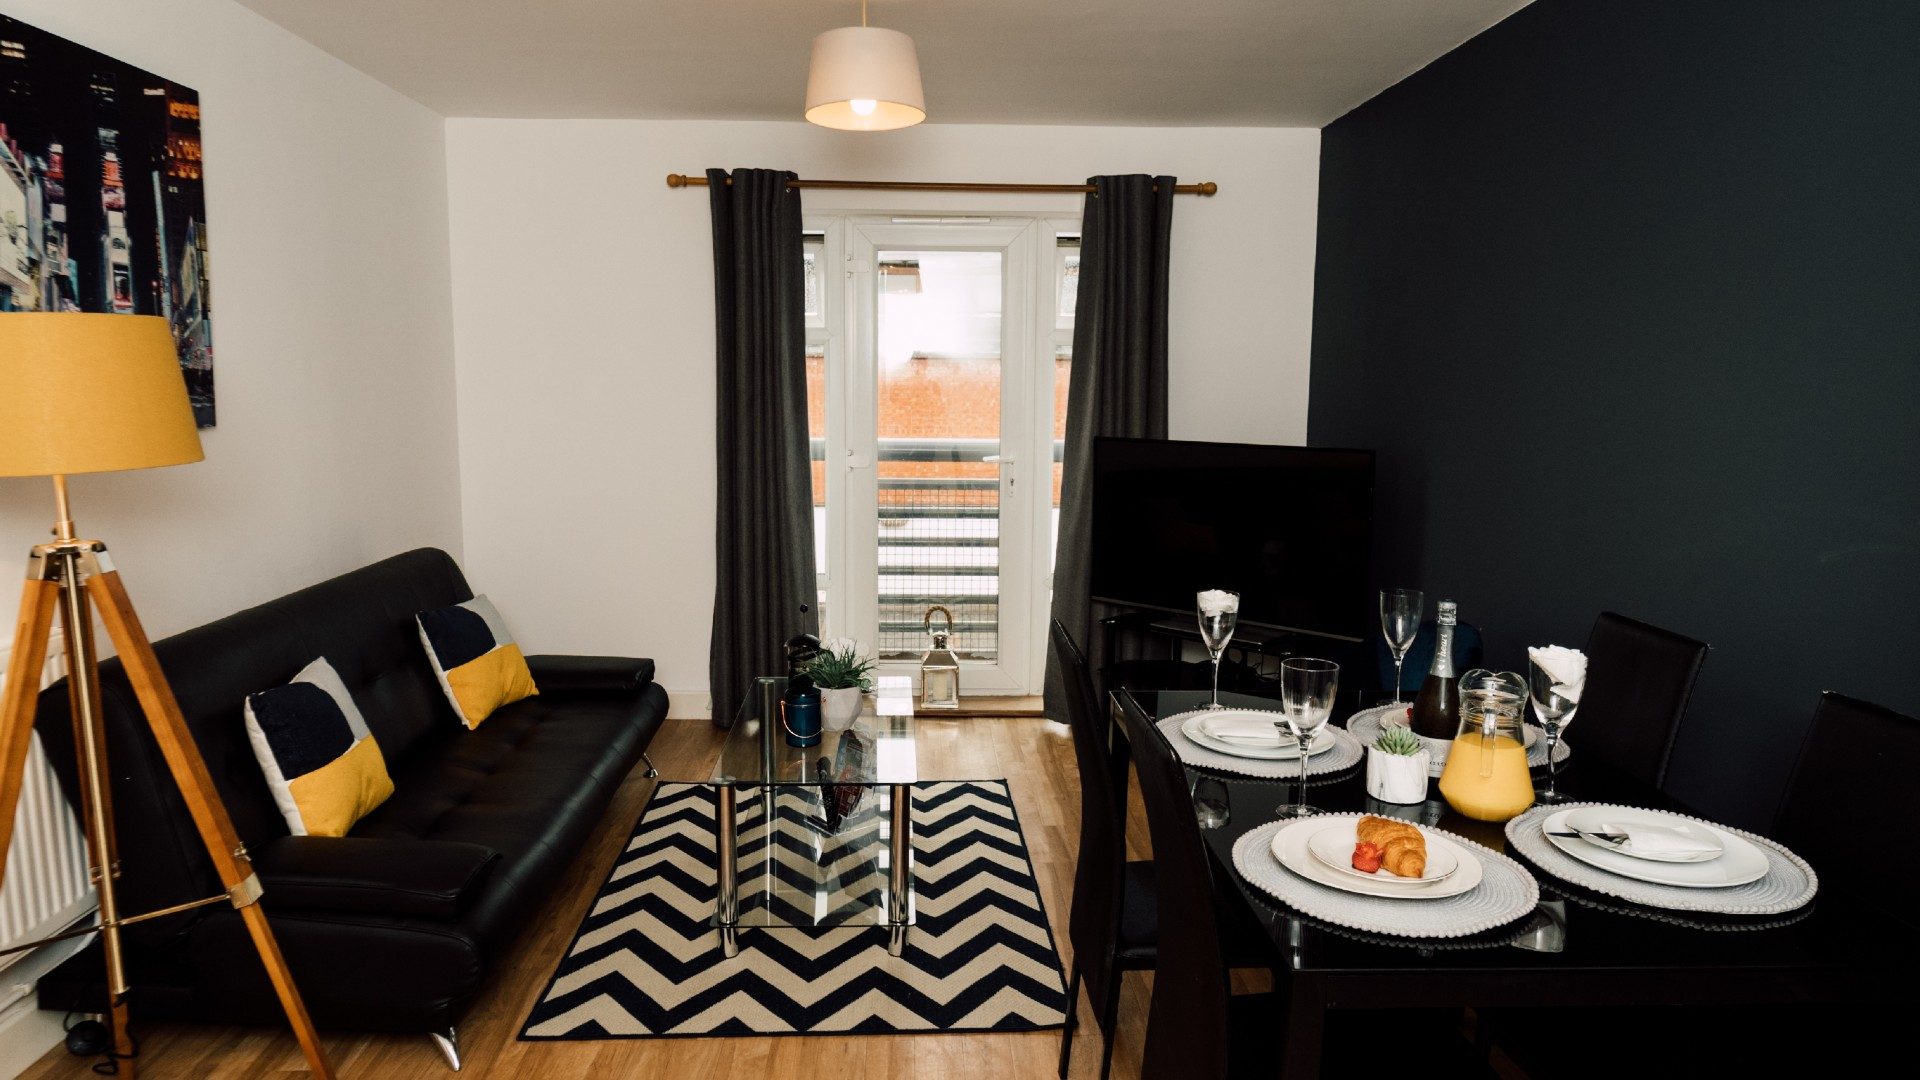 Self Catered Apartments for your Staycation